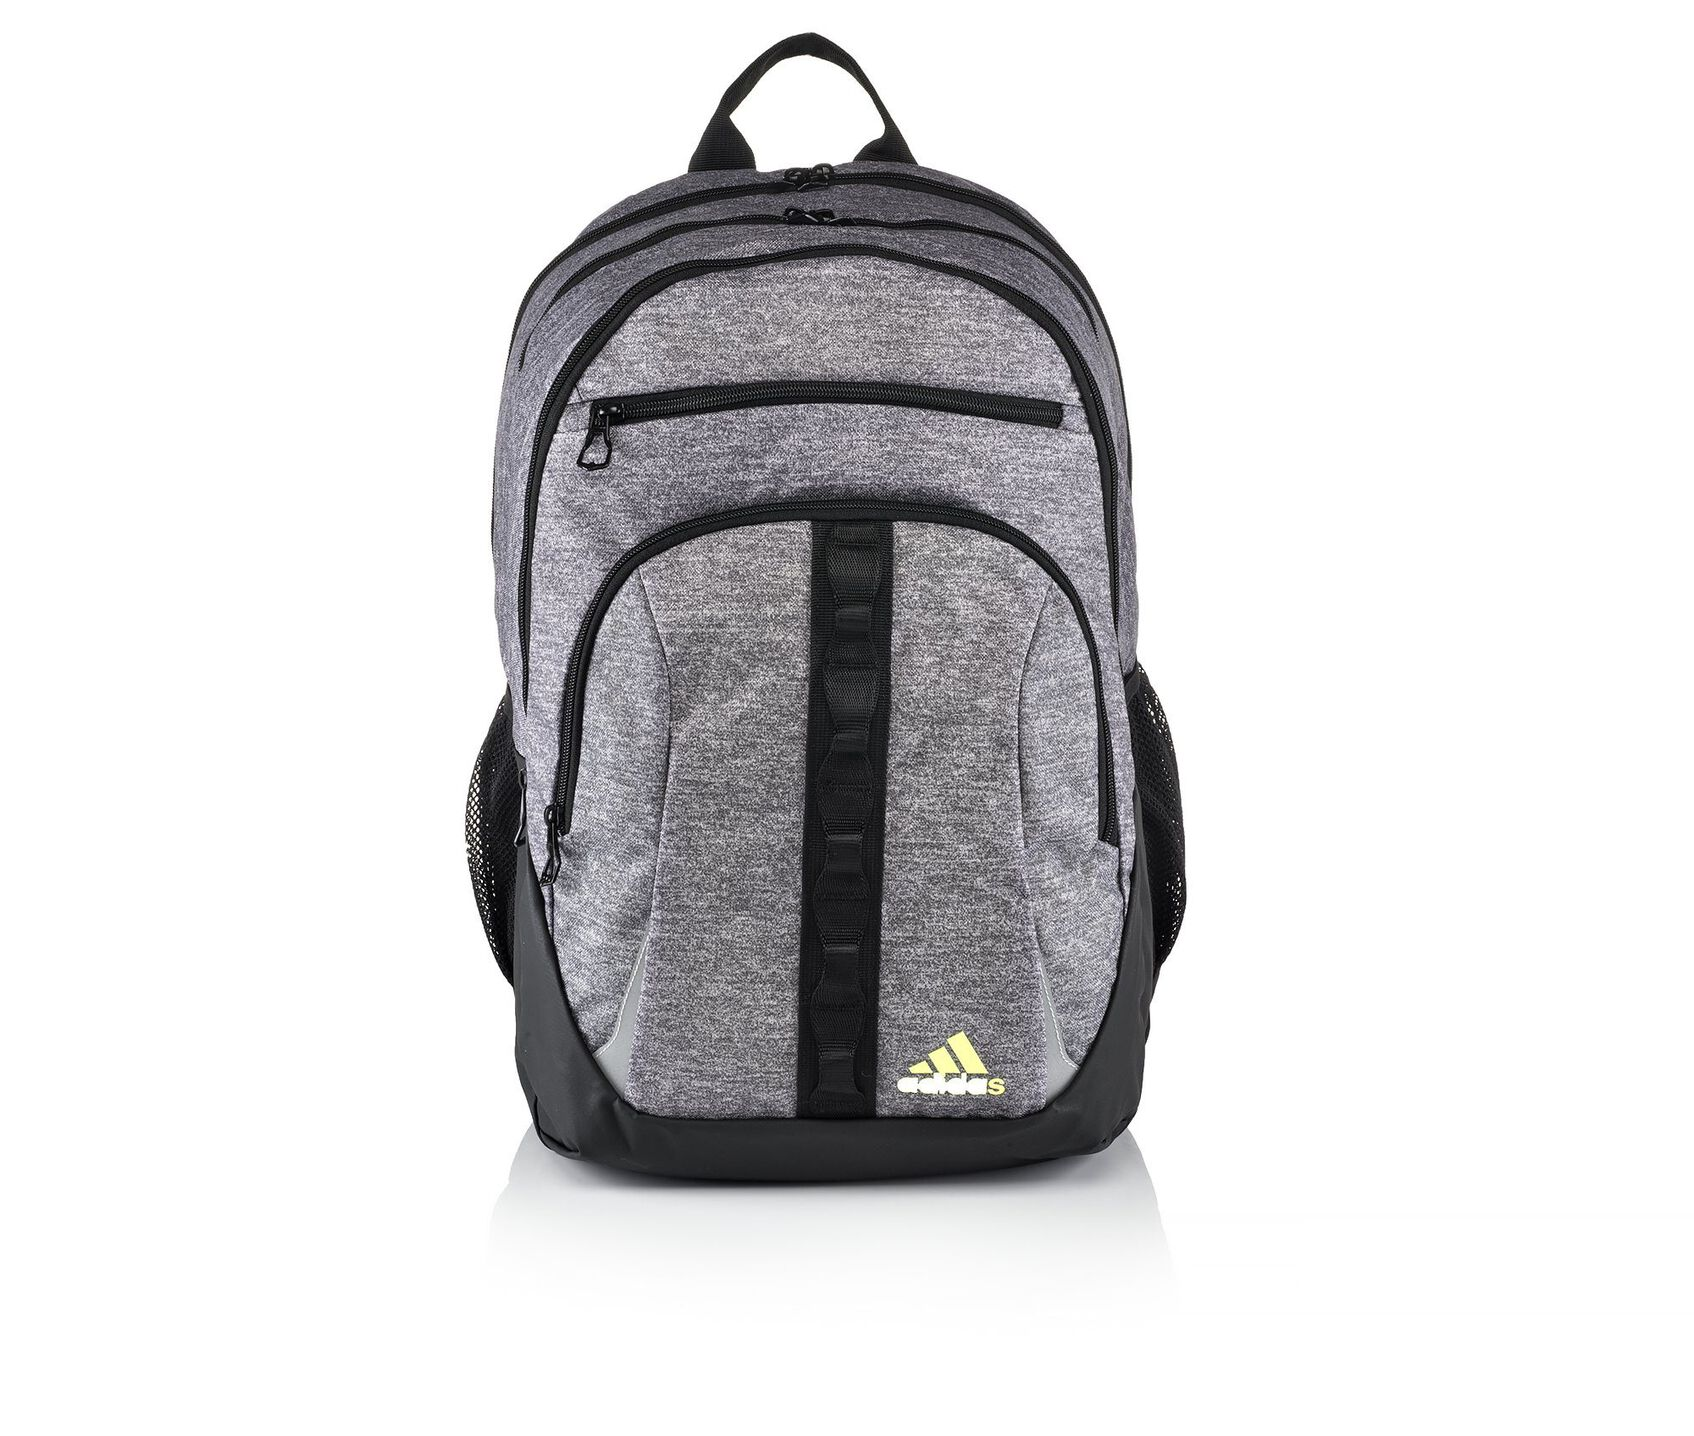 Images. Adidas Prime II Backpack 7807ca1a47763